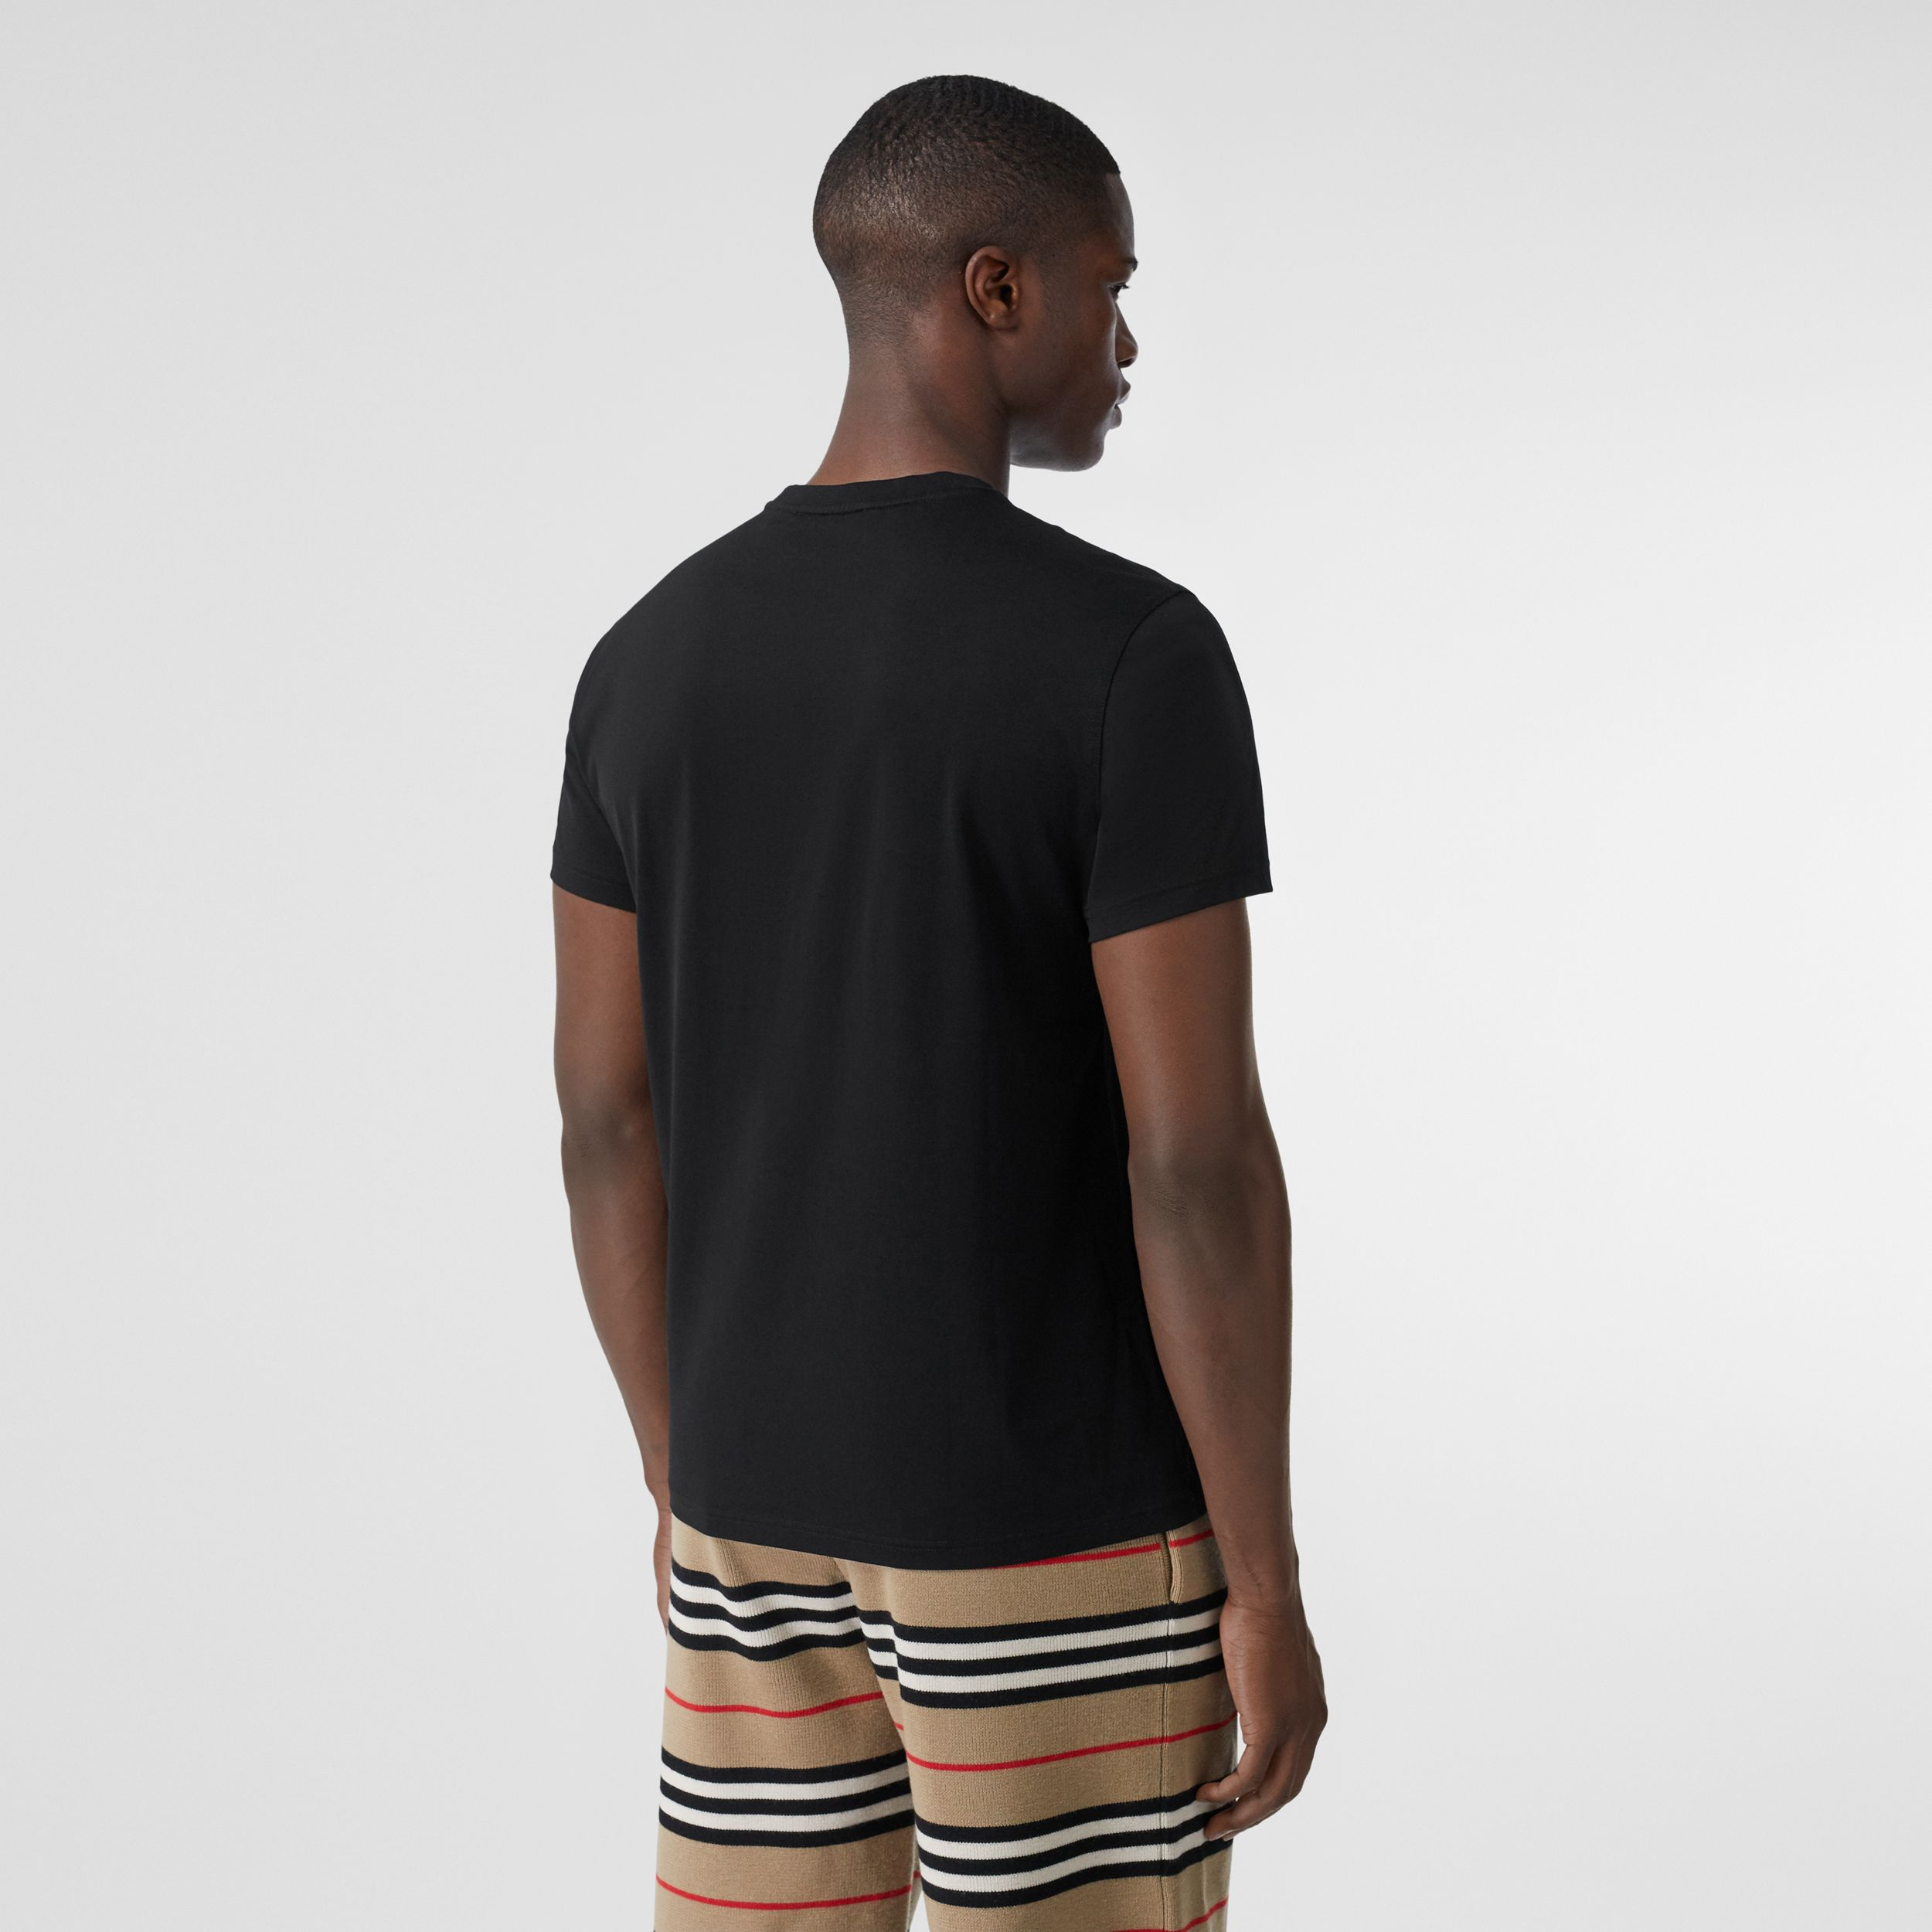 Monogram Motif Cotton T-shirt in Black - Men | Burberry - 3